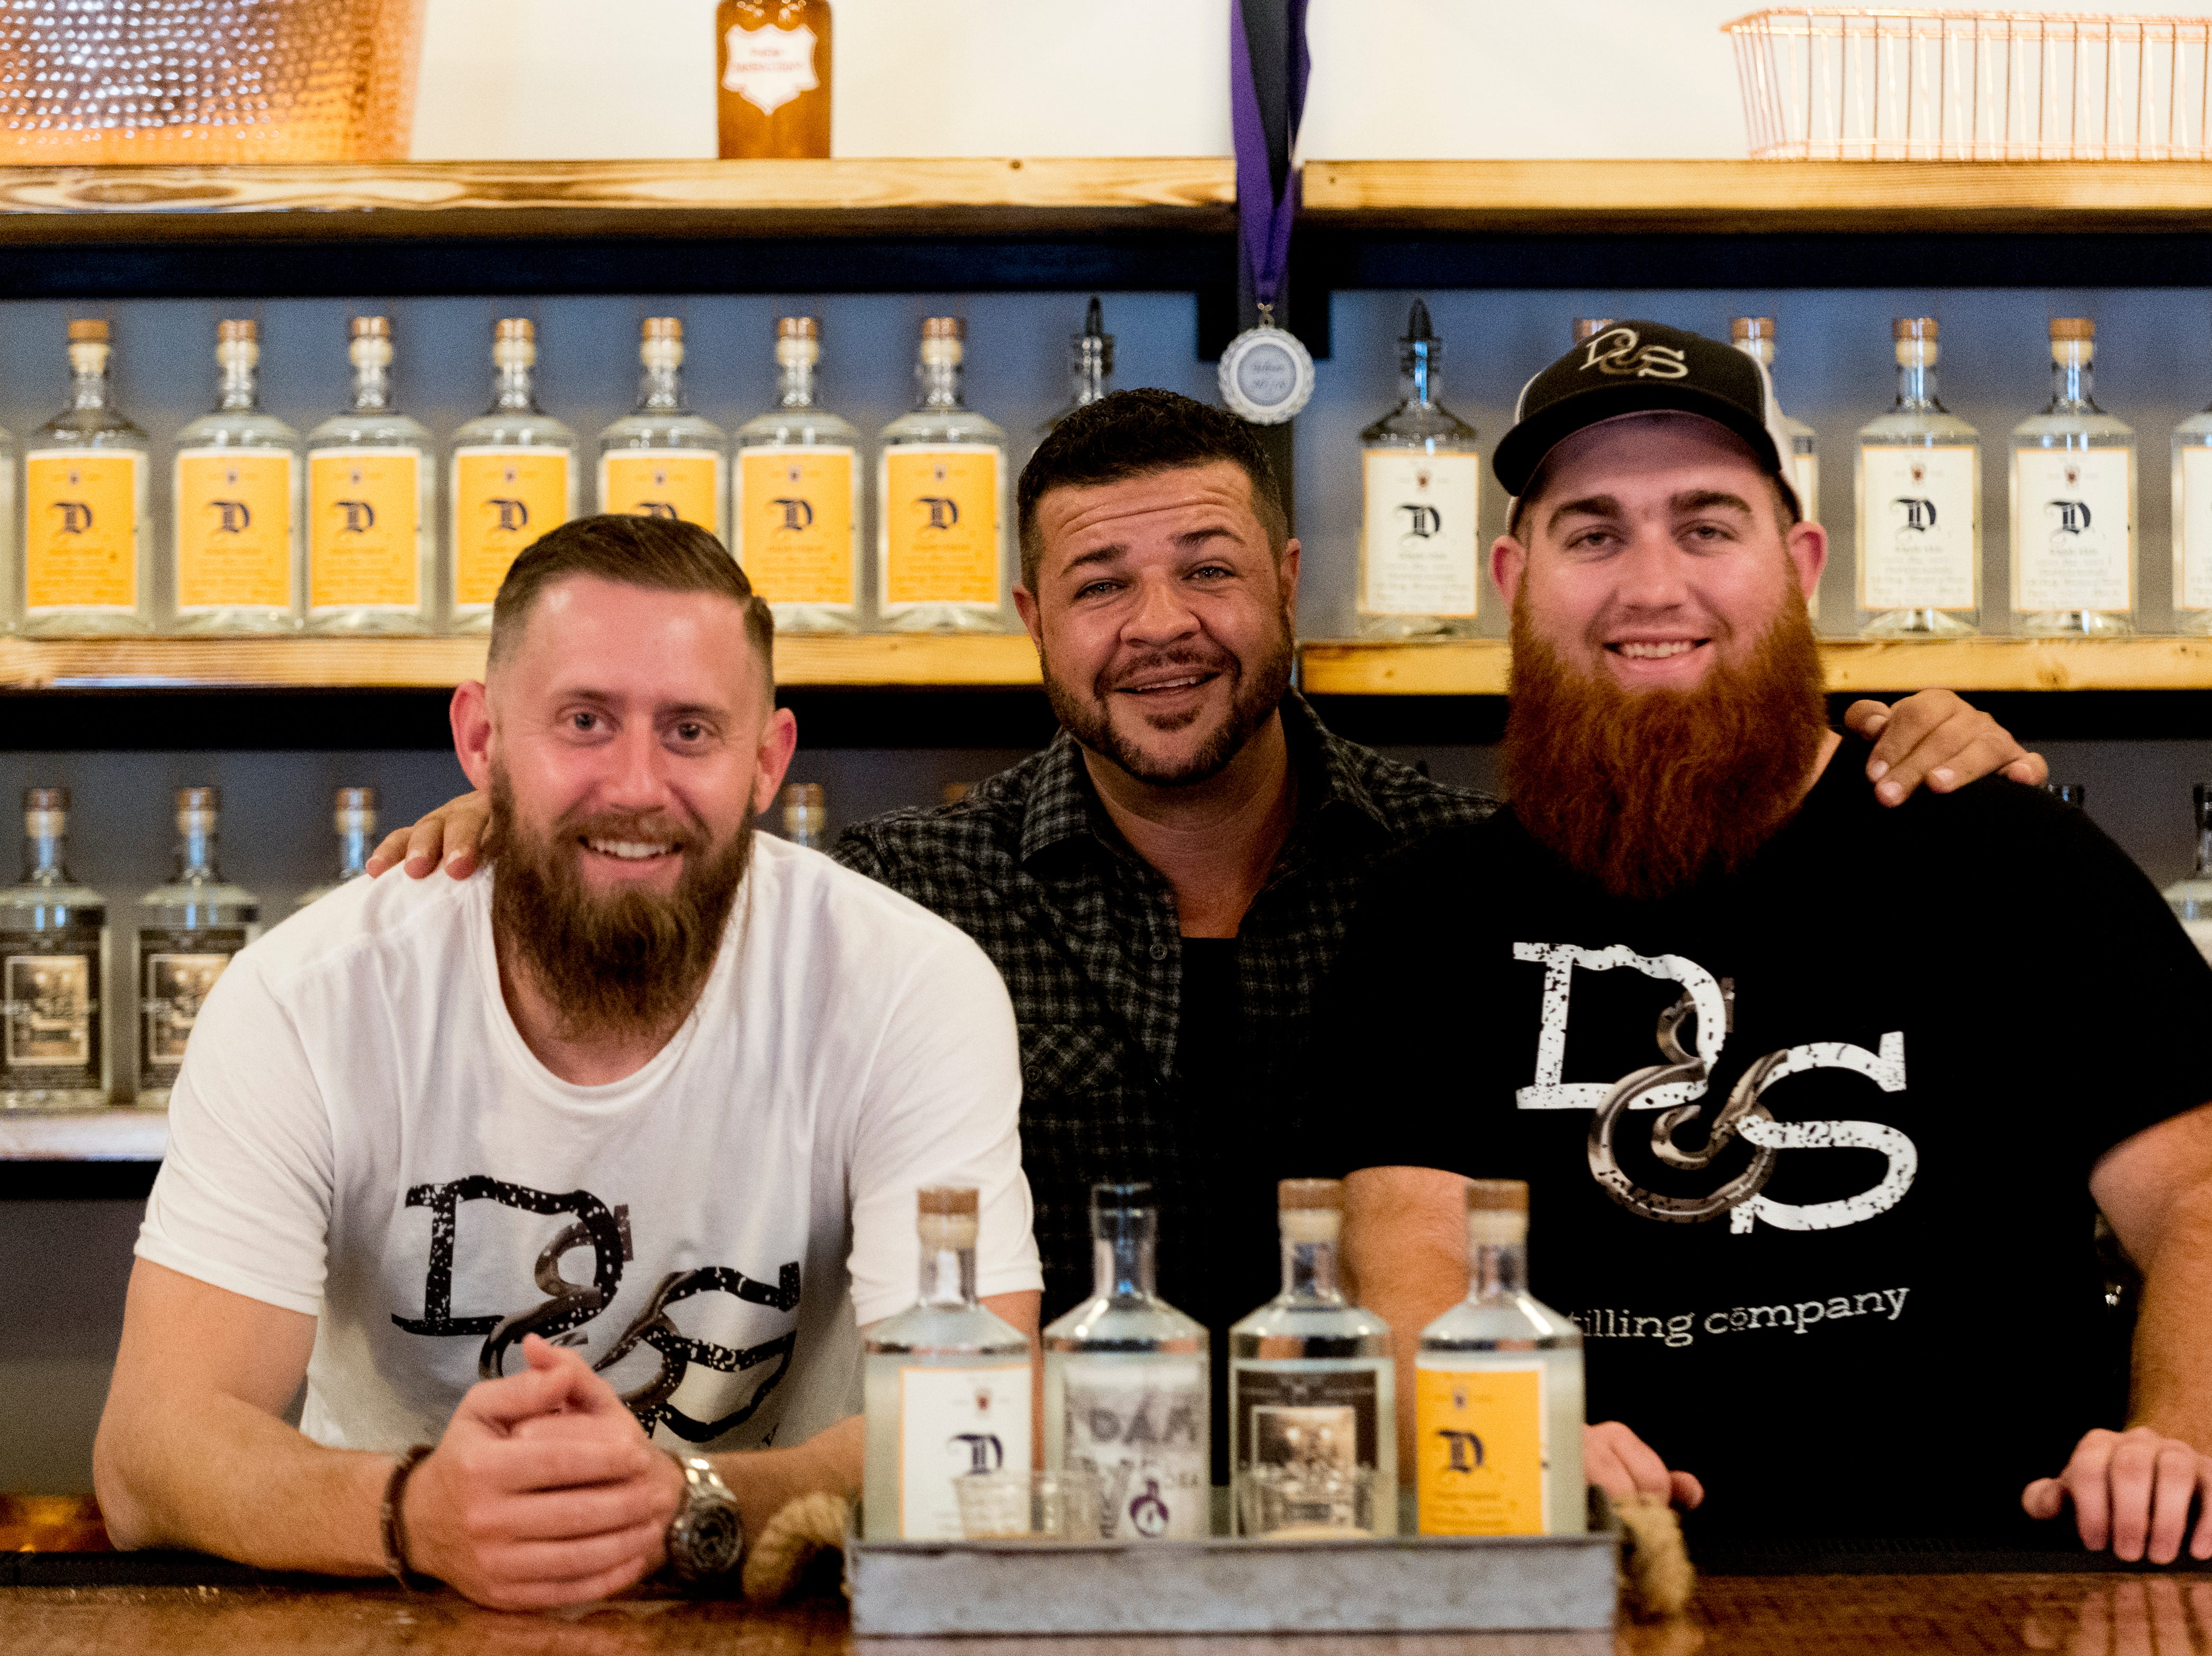 Owner Marcus Delgado, center, with craft ambassador Scott Binckley, left, and Ross Miller, master distiller, right, inside D&S Distilling on 1610 Jenkins Rd. in Sevierville, Tennessee on Tuesday, October 9, 2018. D&S Distilling is TennesseeÕs first completely organic and gluten-free distillery.